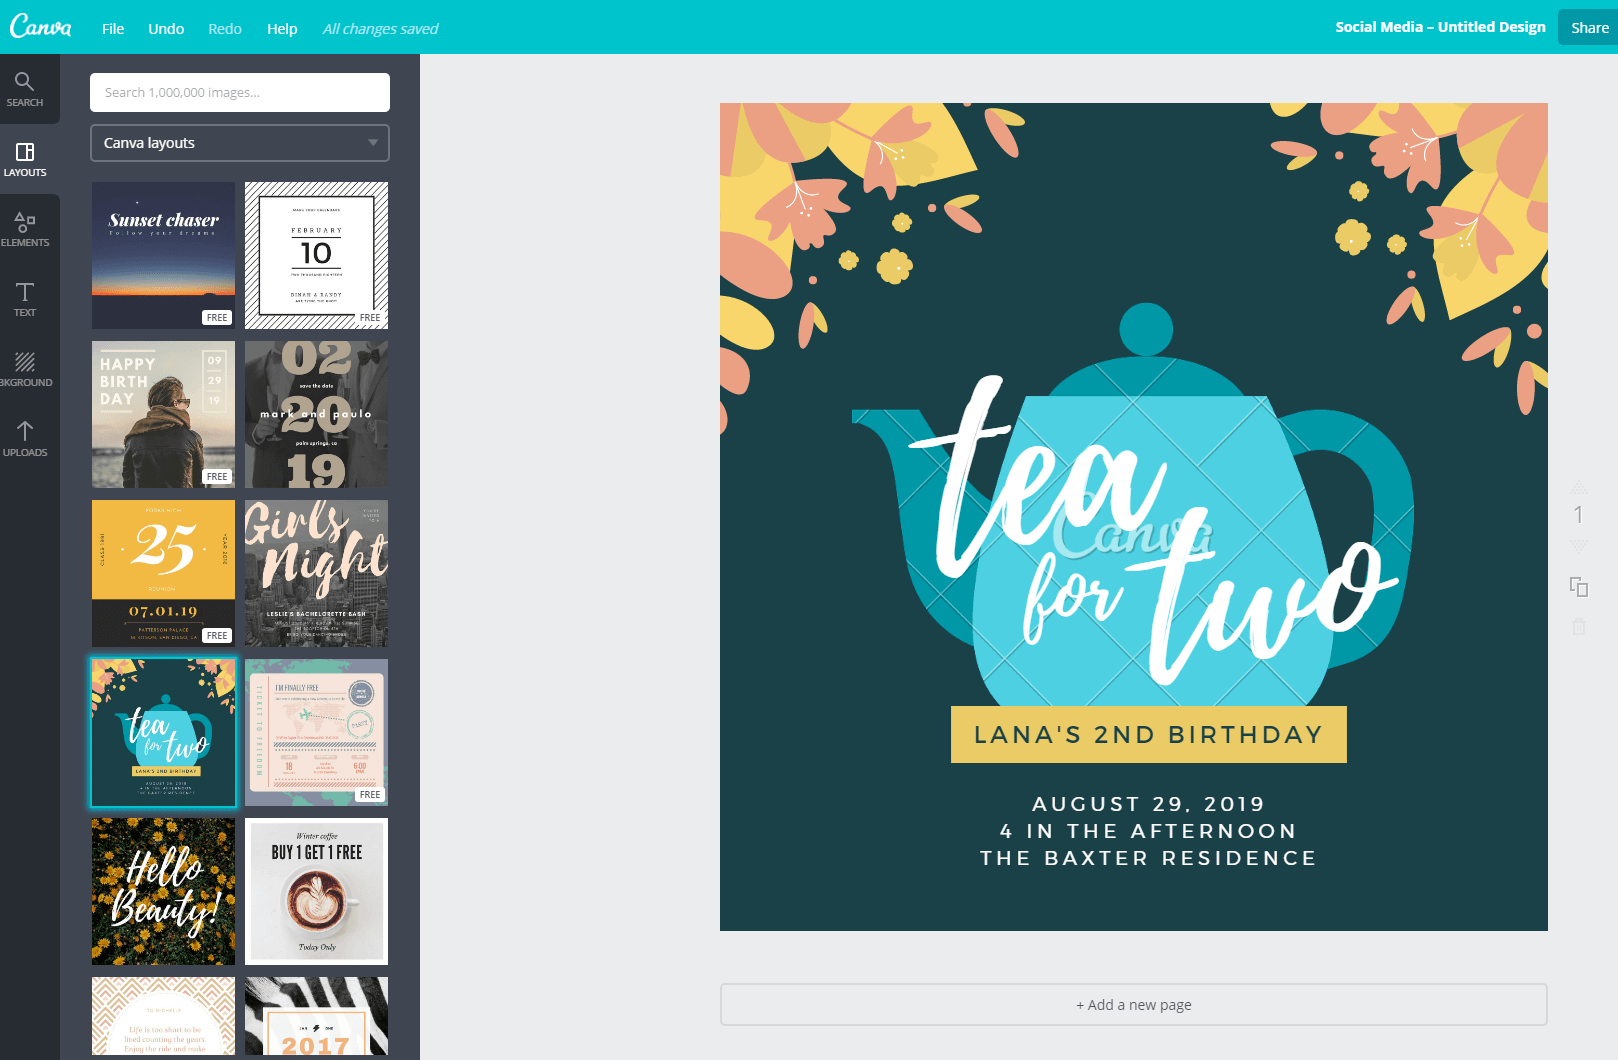 Free alternatives to Adobe InDesign - 1&1 IONOS